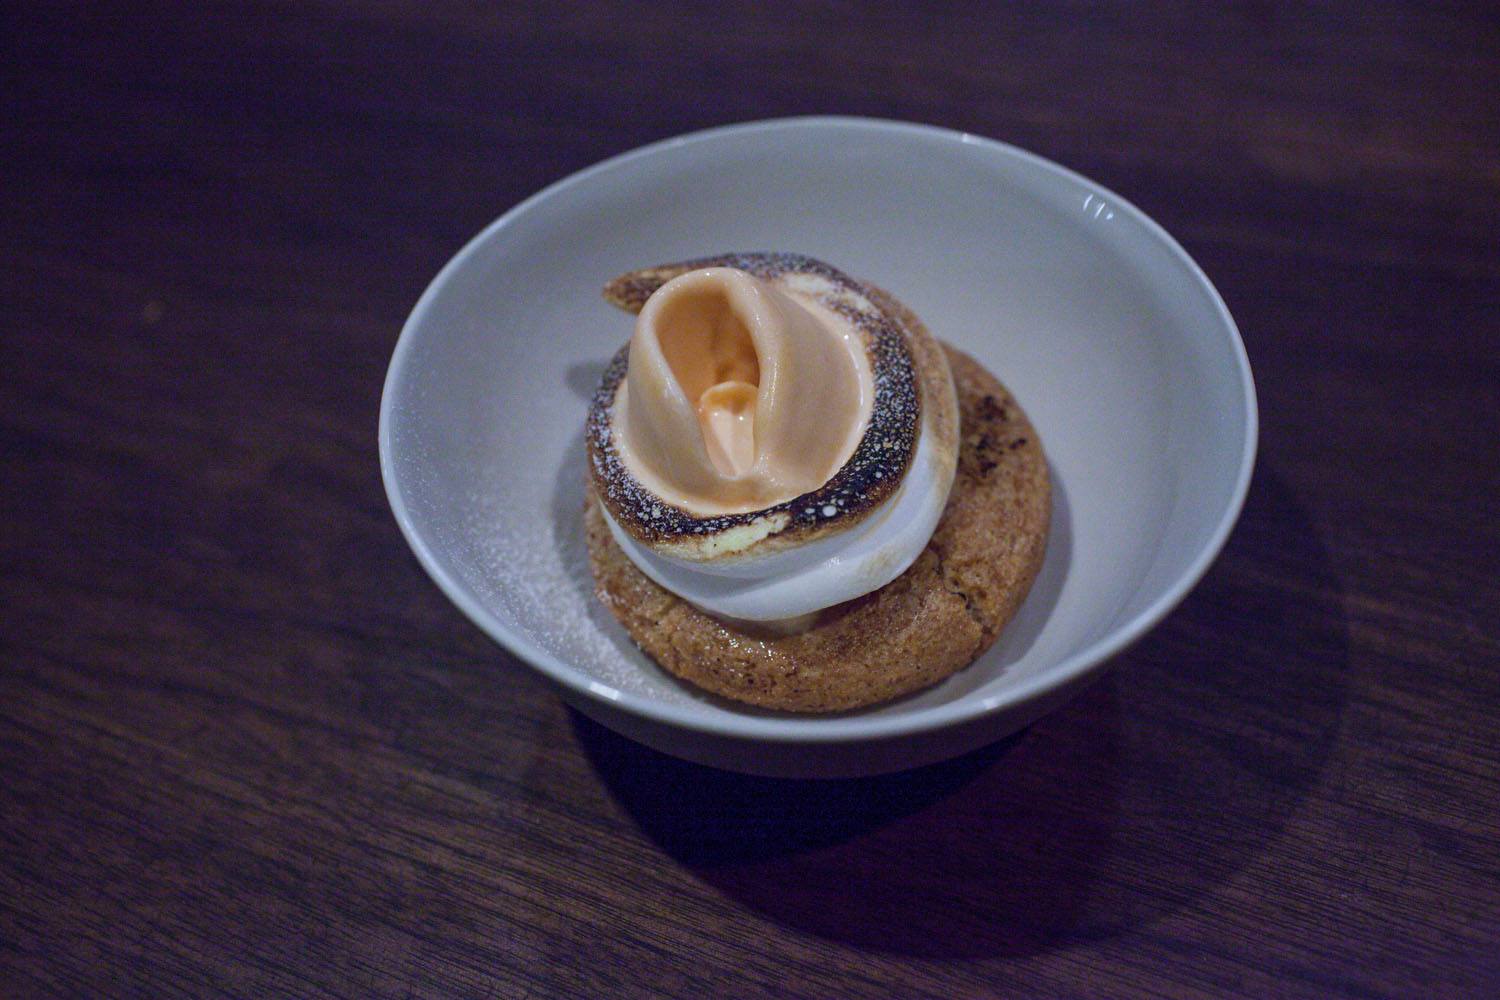 """carrot cardamon cake with merengue, paired with cider from cidrerie du vulcan """"poiré doux"""" from fribourg, switzerland 2013"""